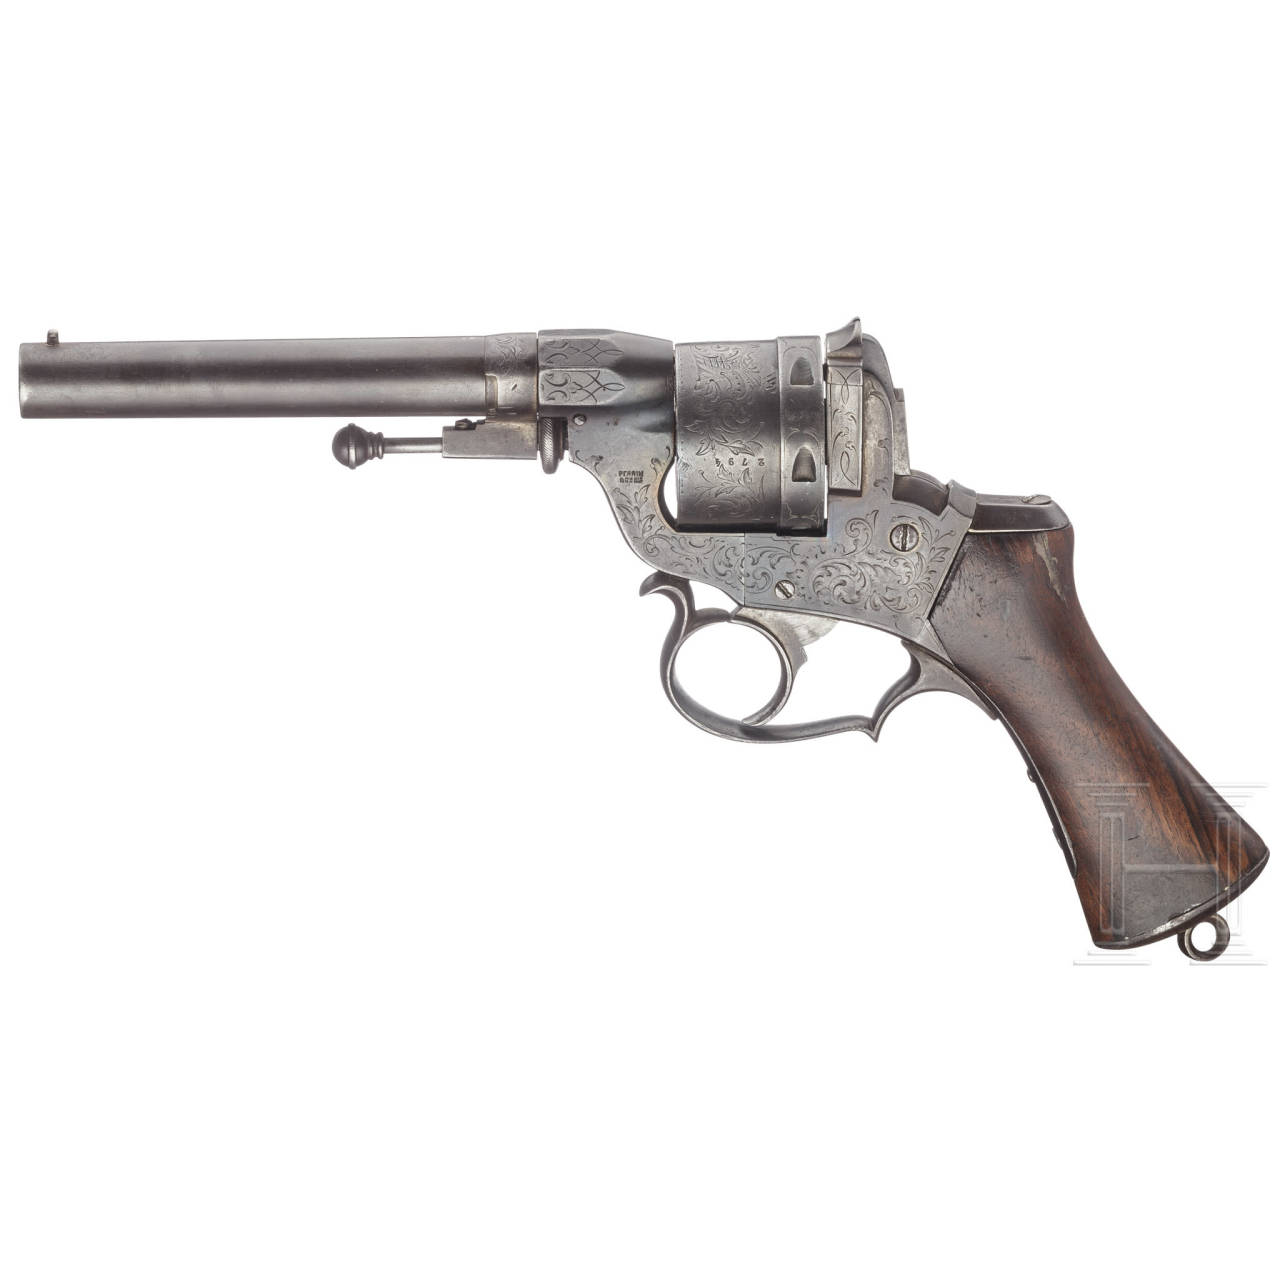 A Perrin model 1859 revolver, 2nd version